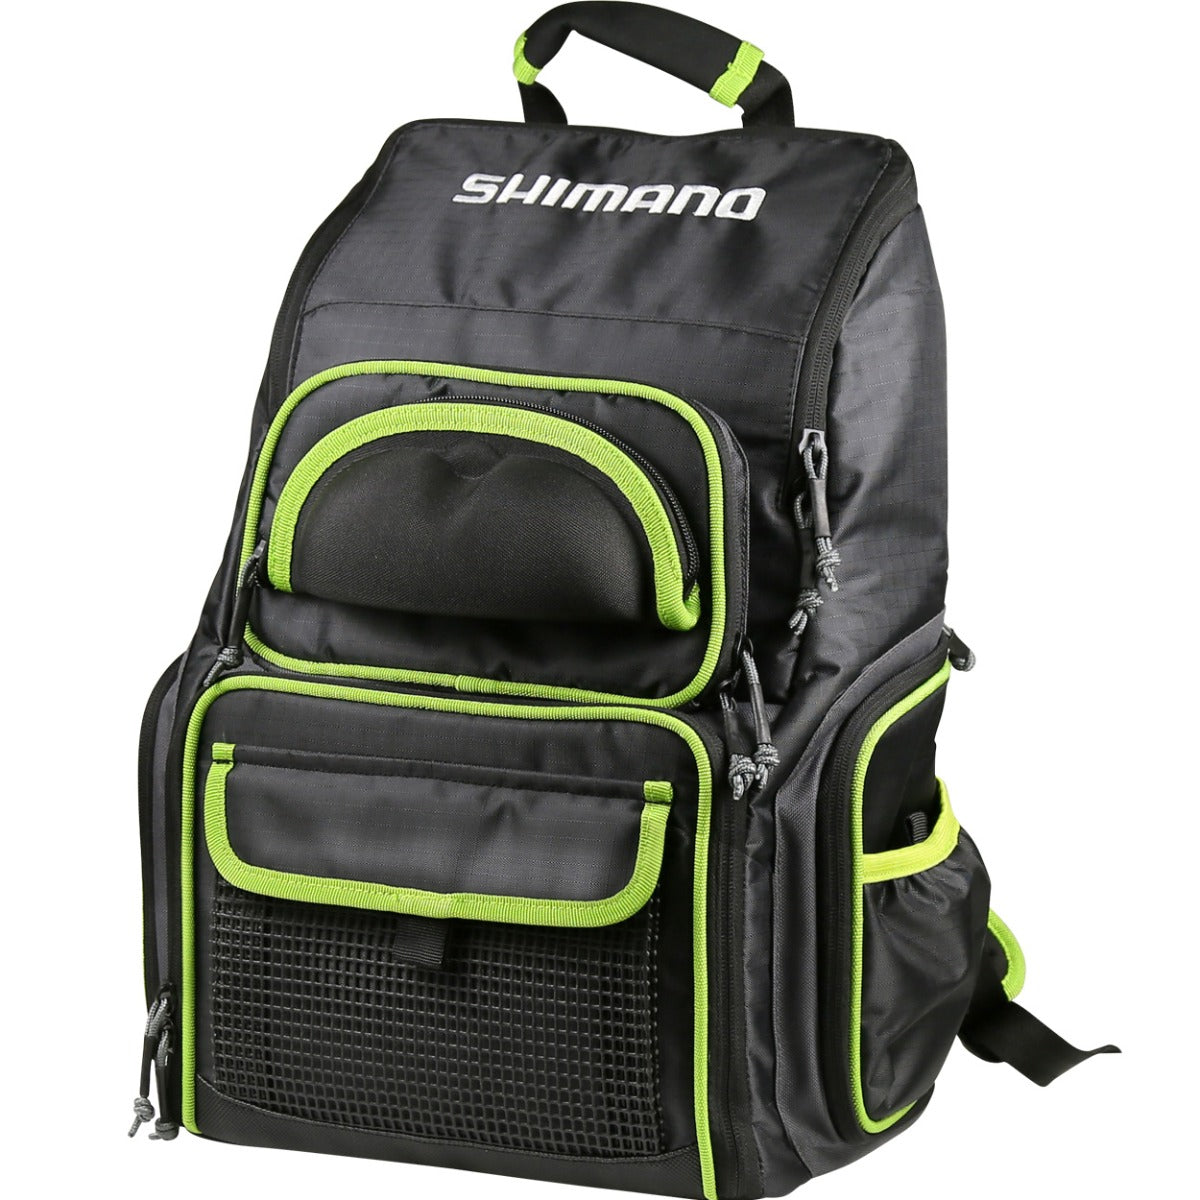 Shimano Soft Tackle Backpack with 4 Boxes